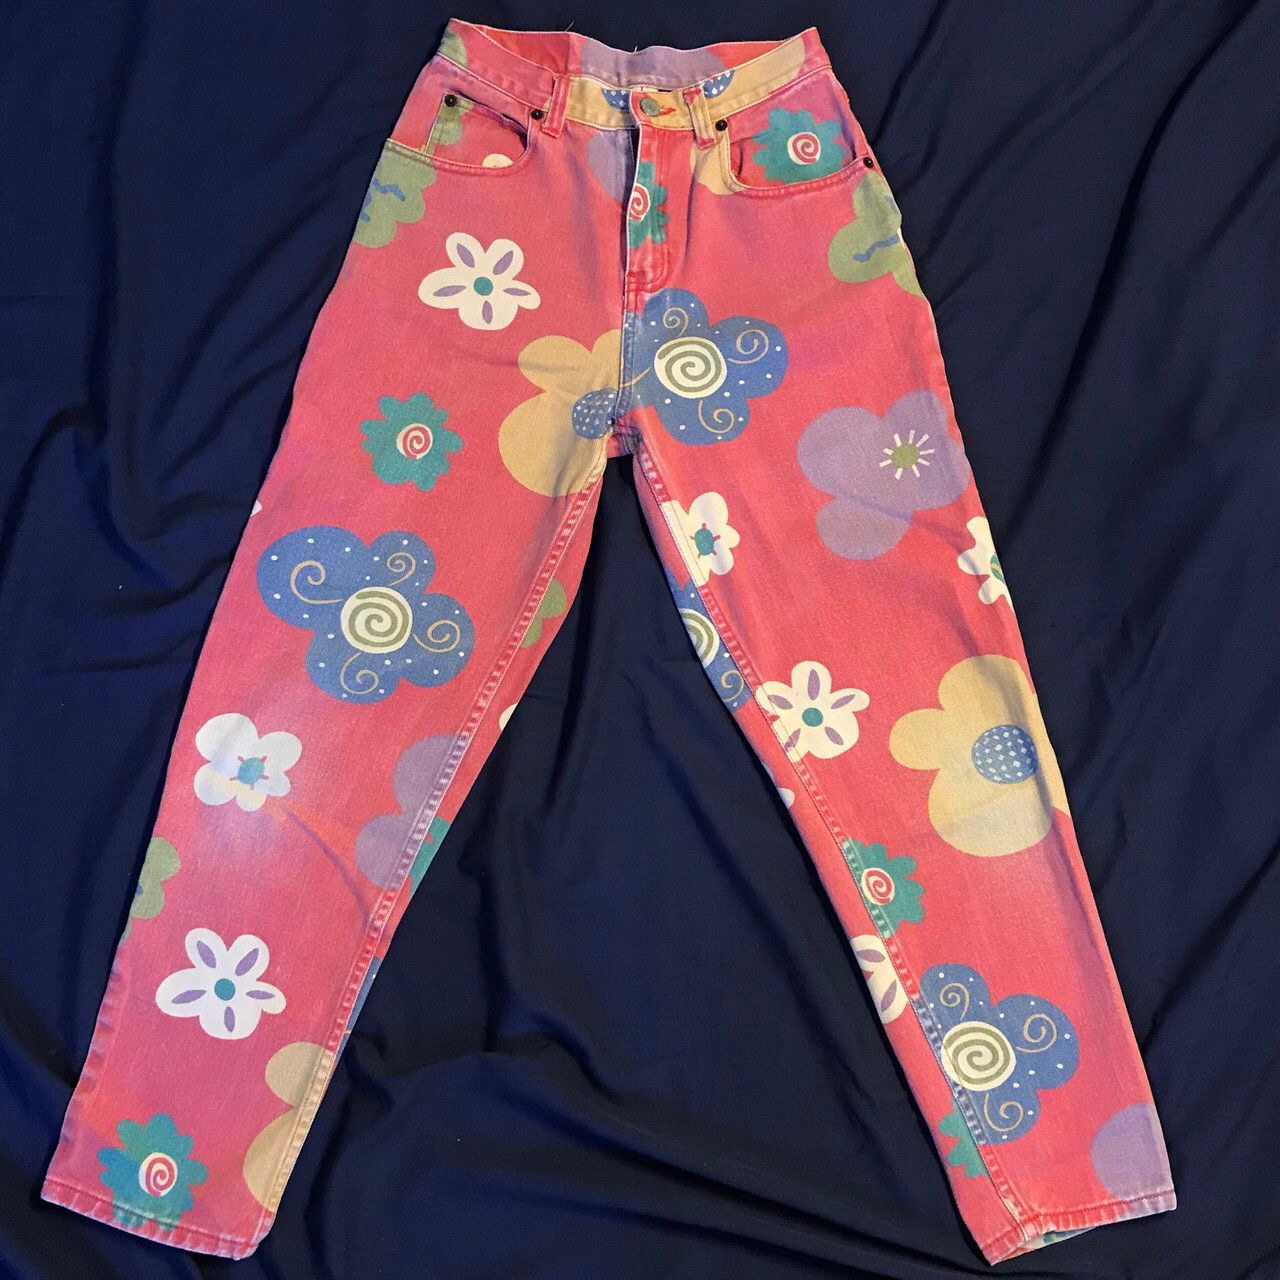 8f1fa56d Listed on Depop by nrebda in 2019 | depop | Flower jeans, Depop, Pink